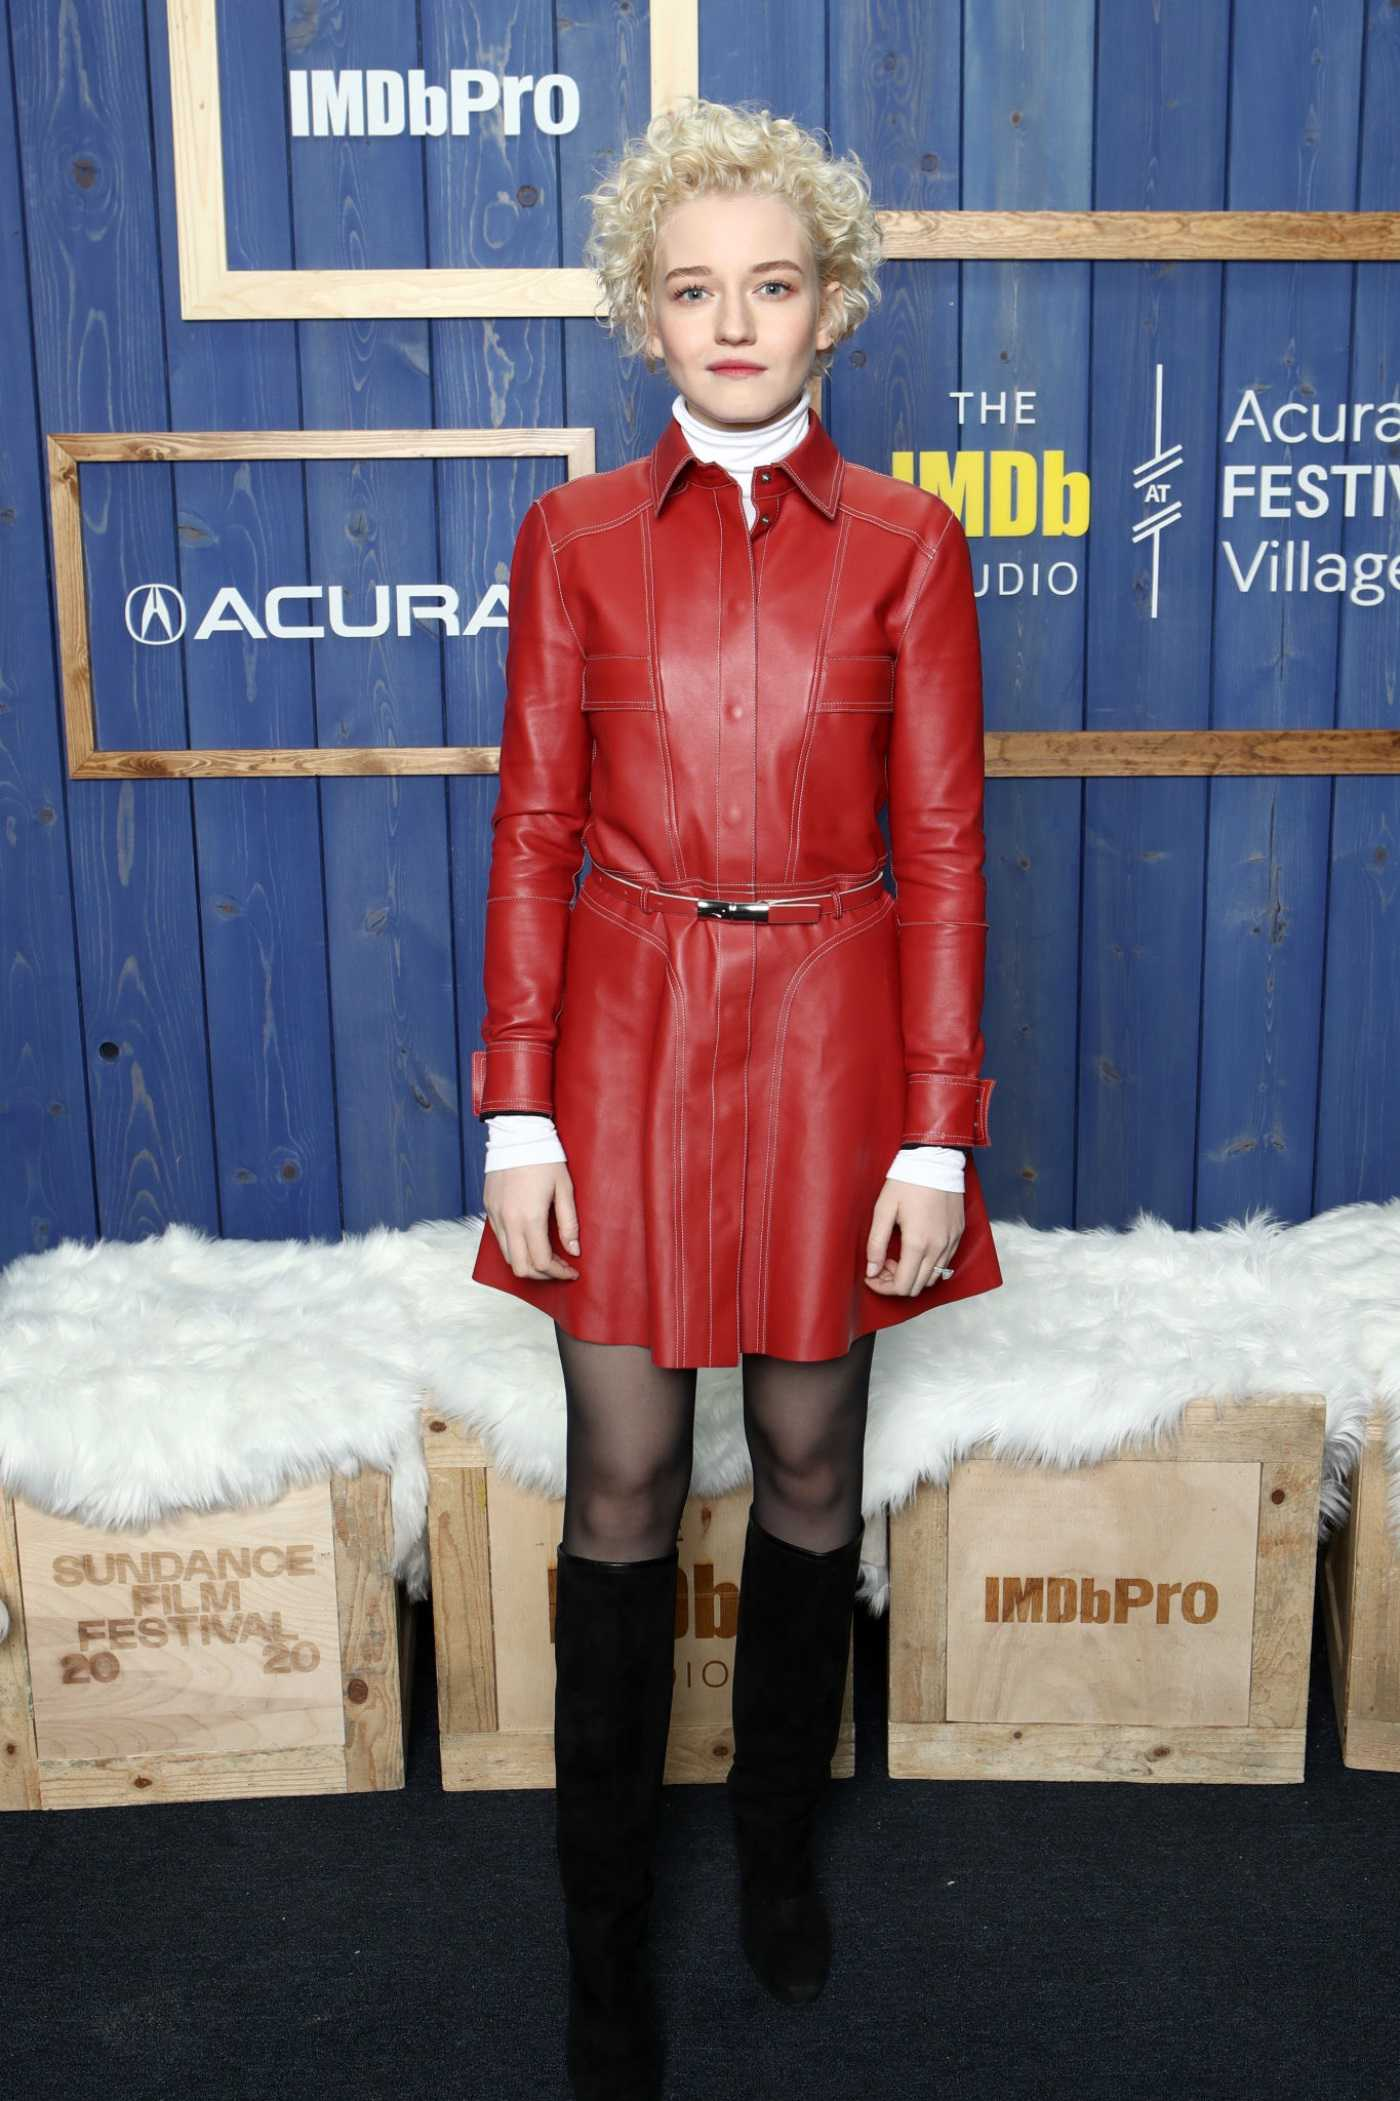 Julia Garner Attends the IMDb Studio at Acura Festival Village in Park City 01/26/2020